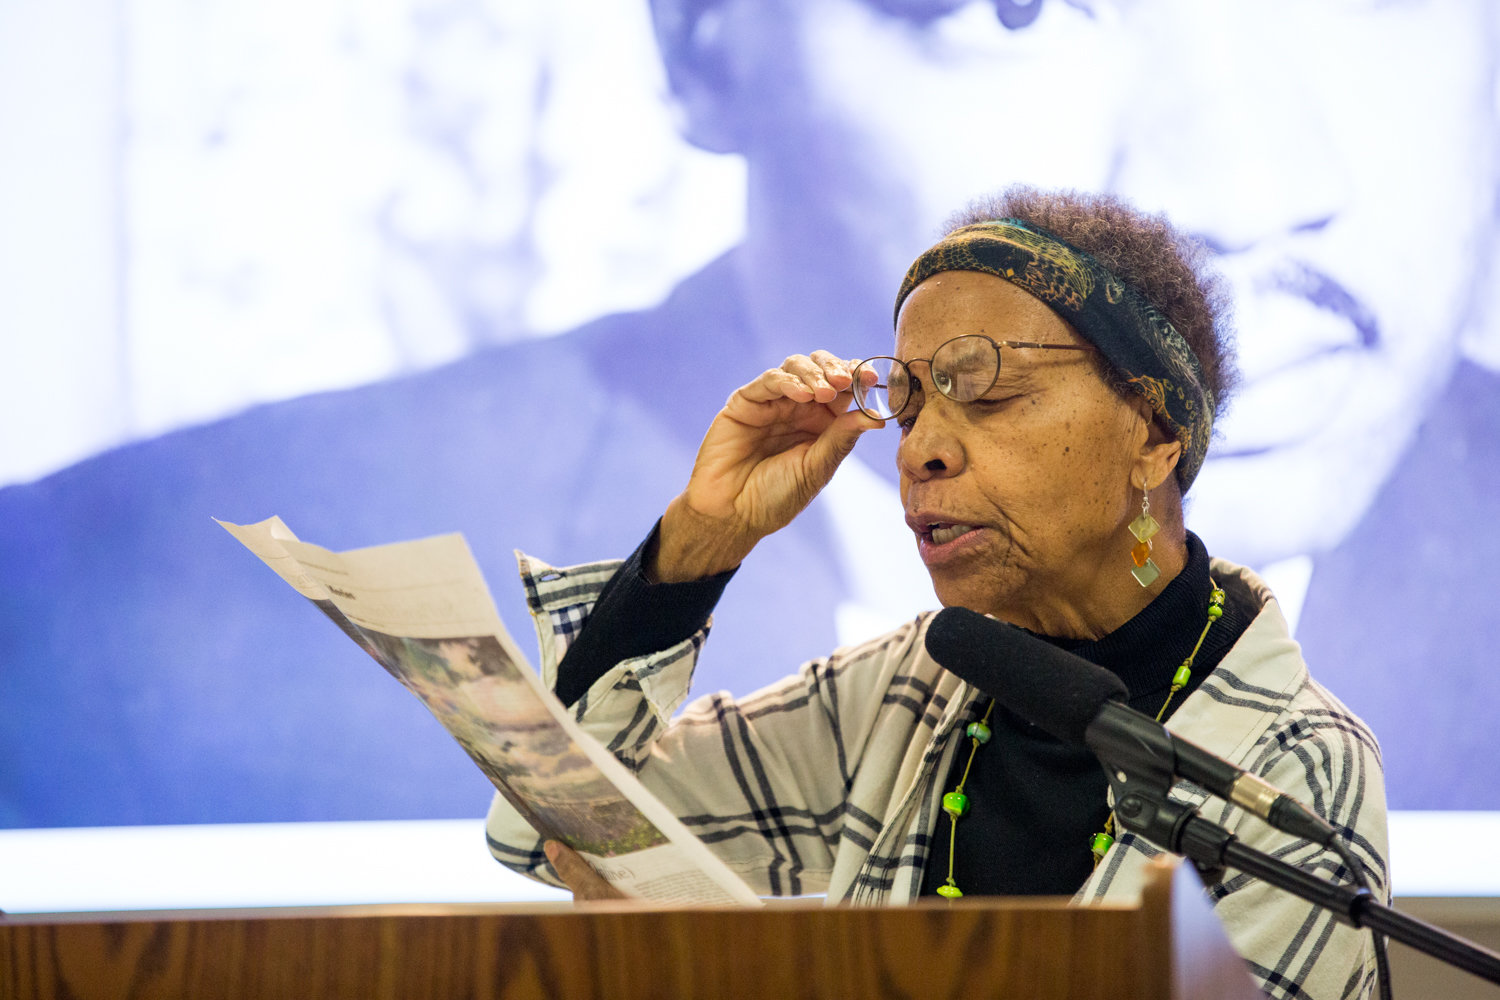 Ernece Kelly reads from a newspaper story about Dr. Martin Luther King Jr., with whom she worked for in Chicago, during a presentation about the activist's legacy at RSS-Riverdale Senior Services last week.